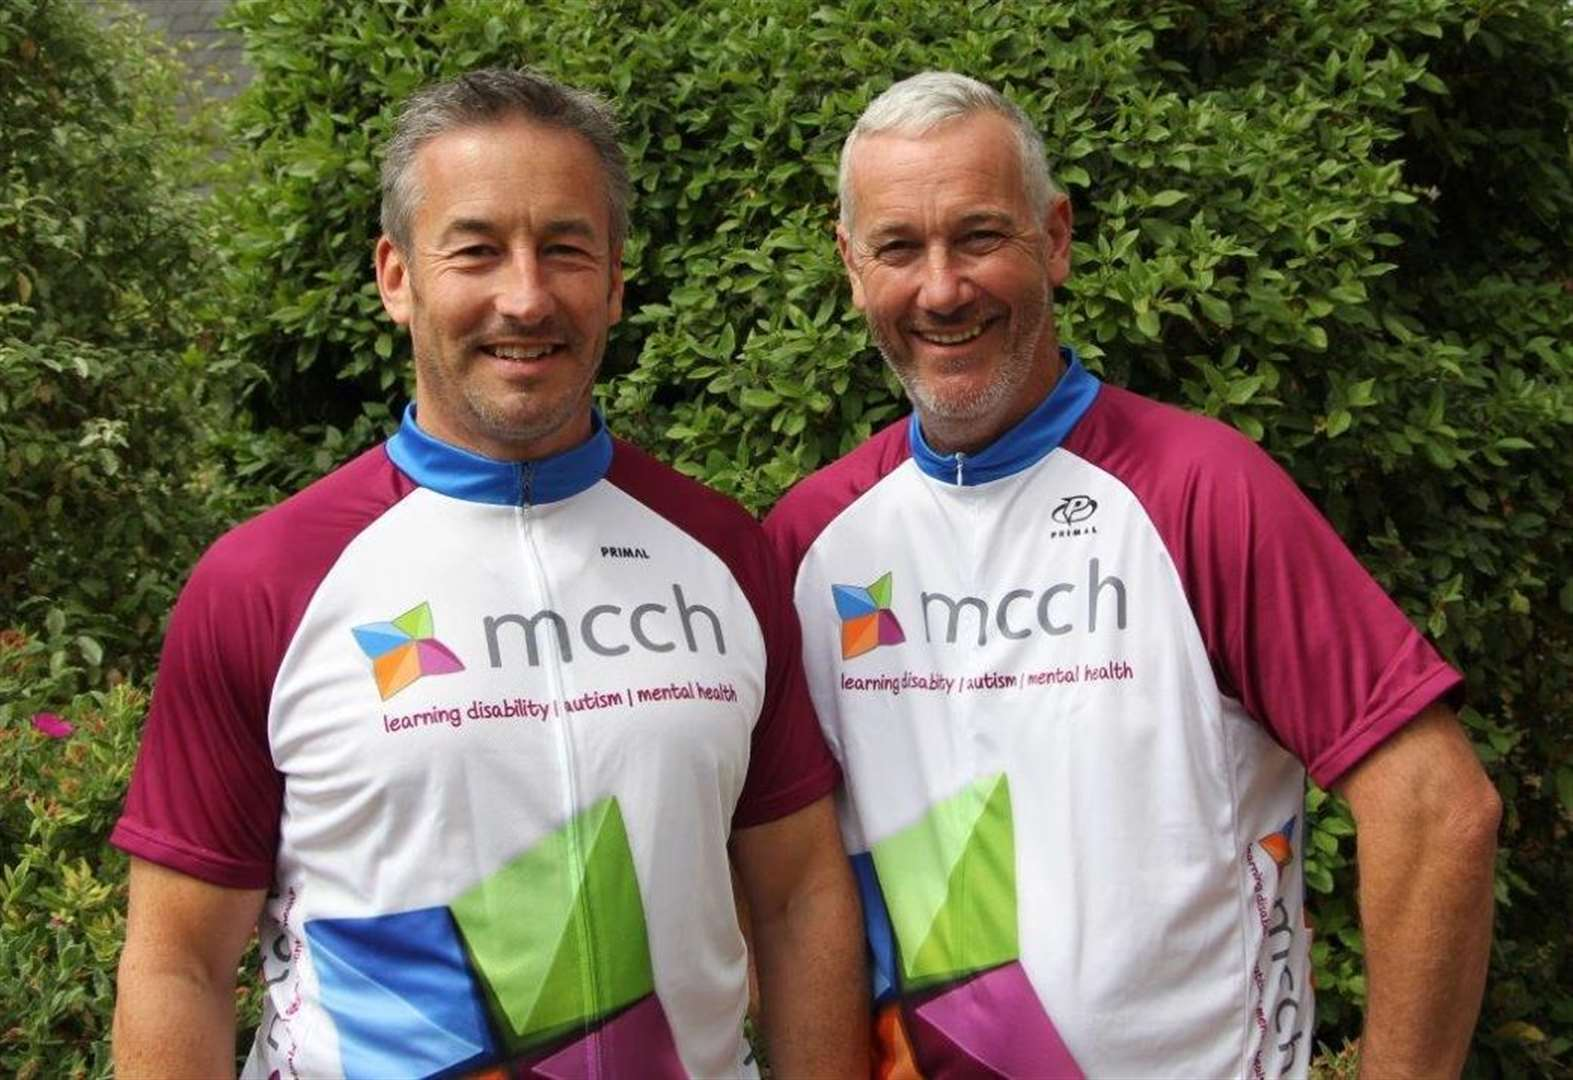 mcch takes on 100-mile challenge